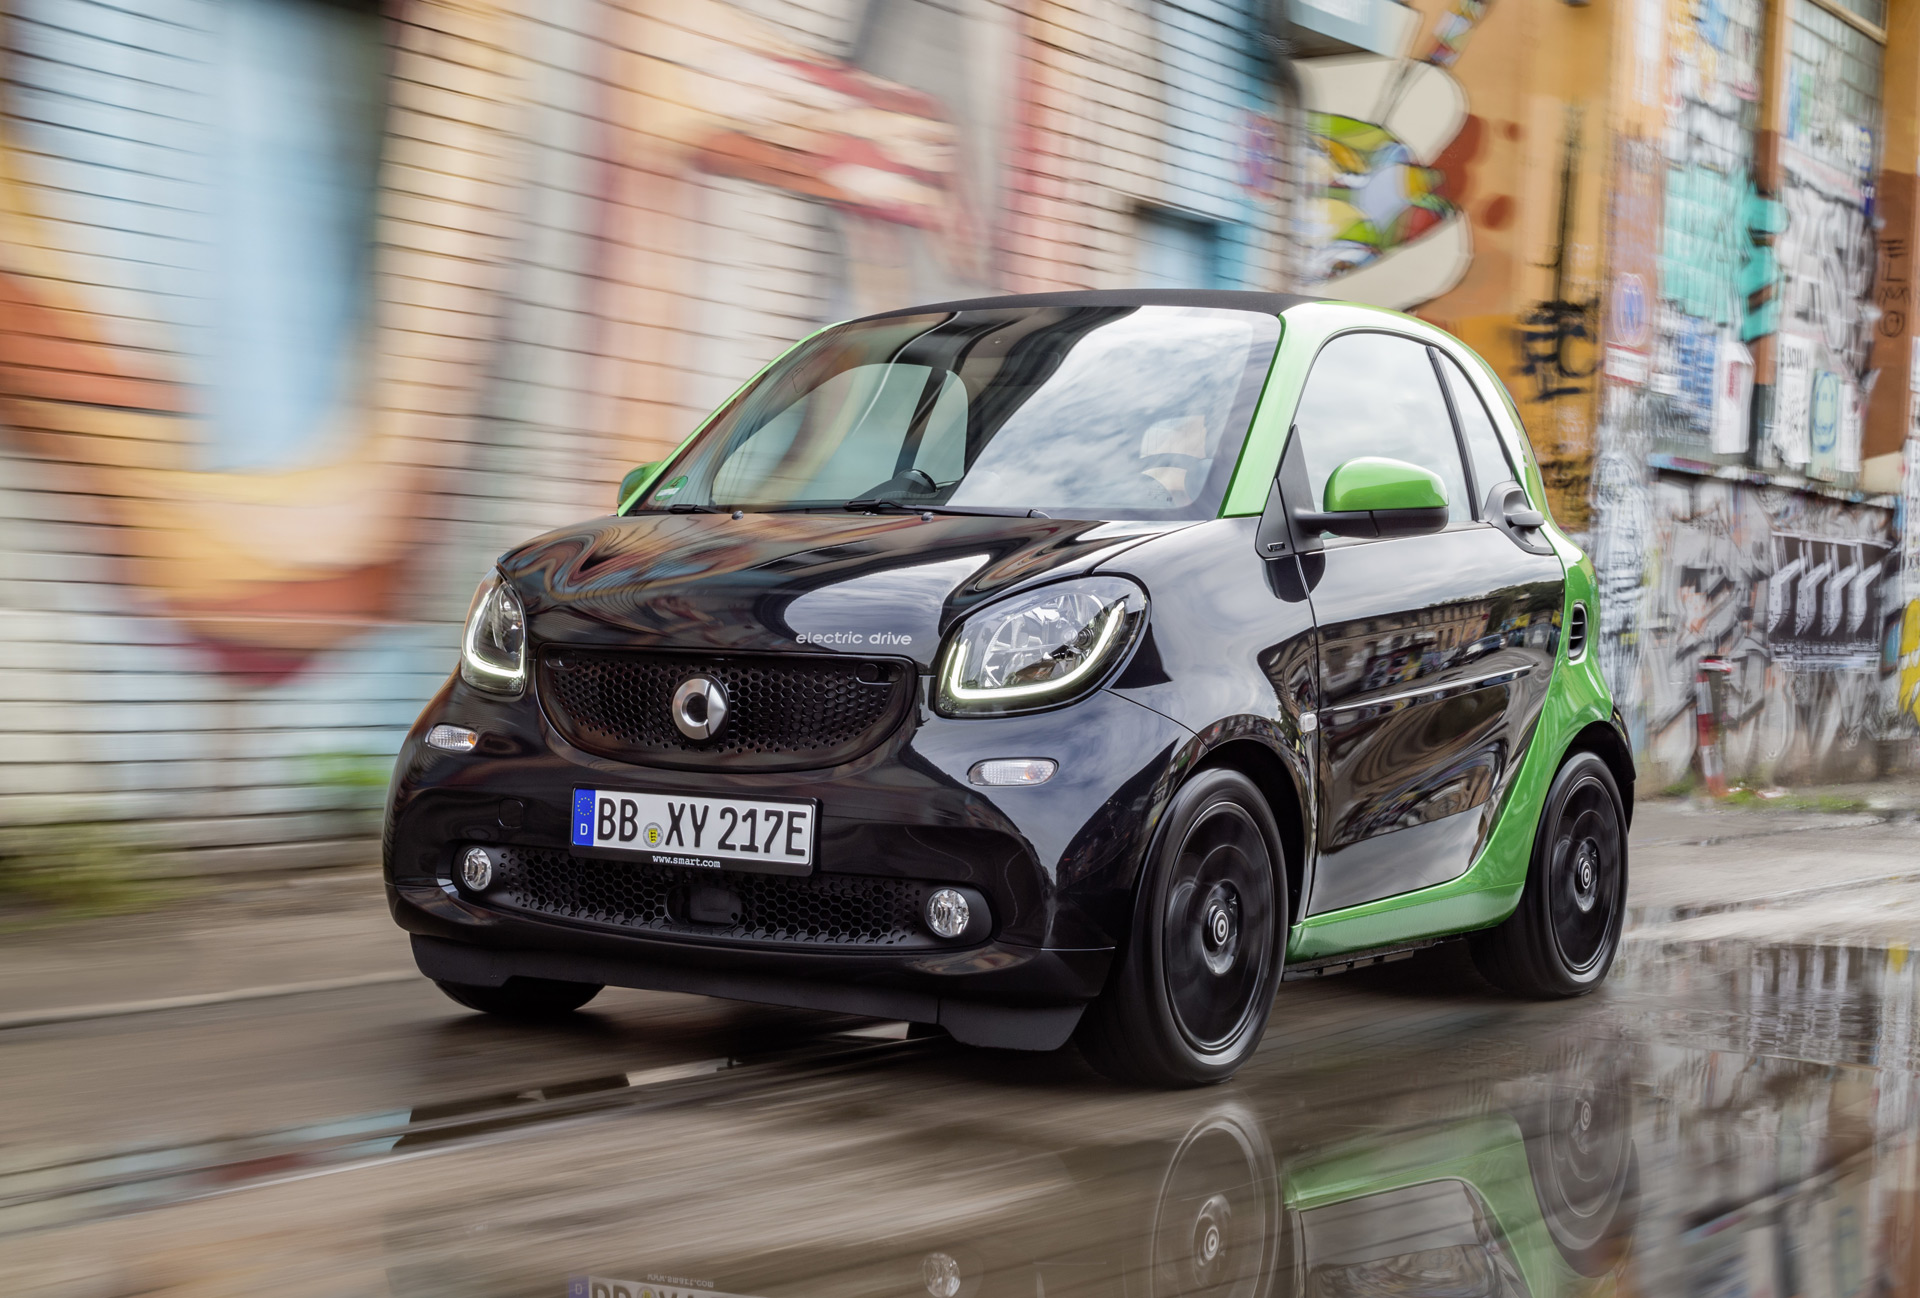 2017-smart-fortwo-electric-drive_100566136_h